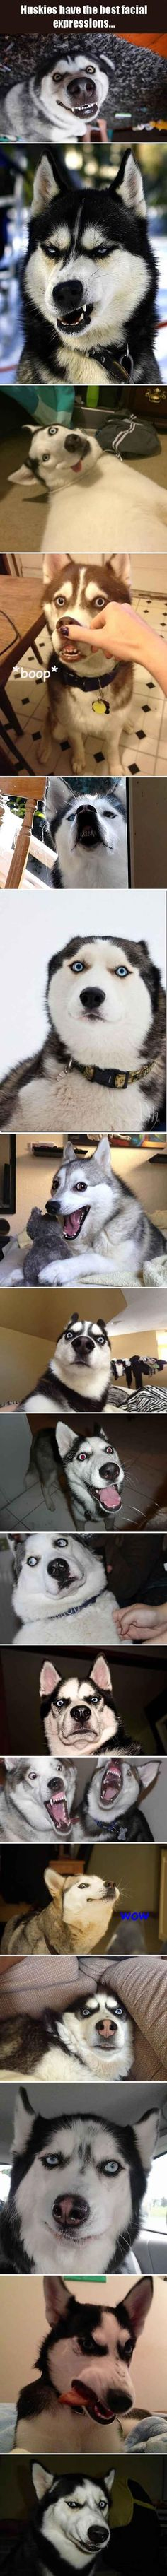 Huskies Have The Best Facial Expressions 17 Pics... I make that second one a lot, lol